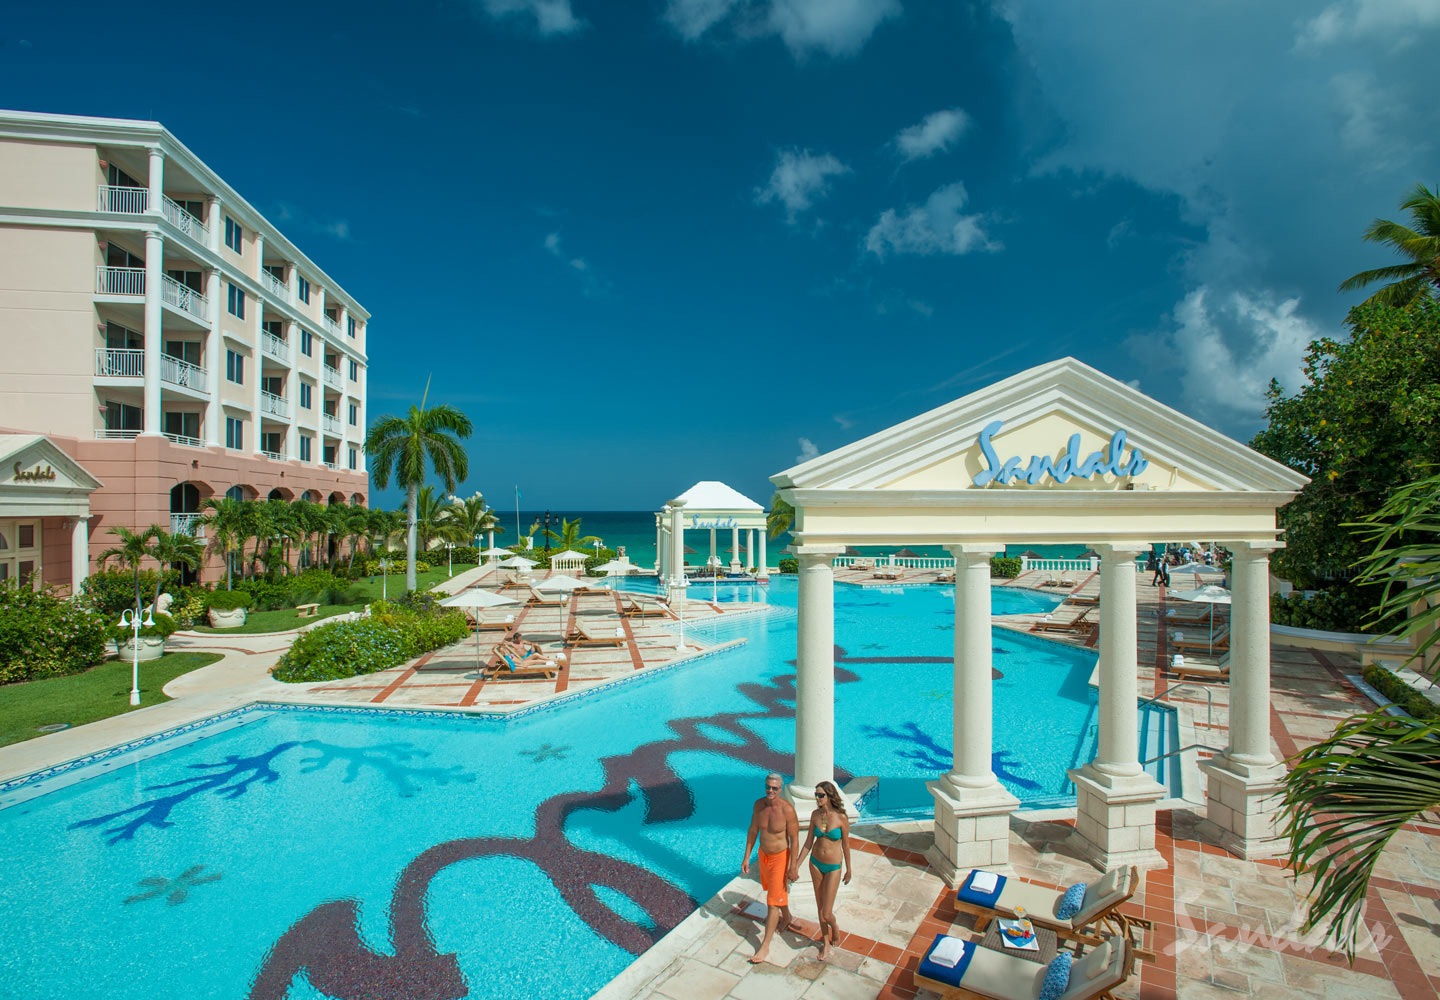 Travel Agency All-Inclusive Resort Sandals Royal Bahamian 096